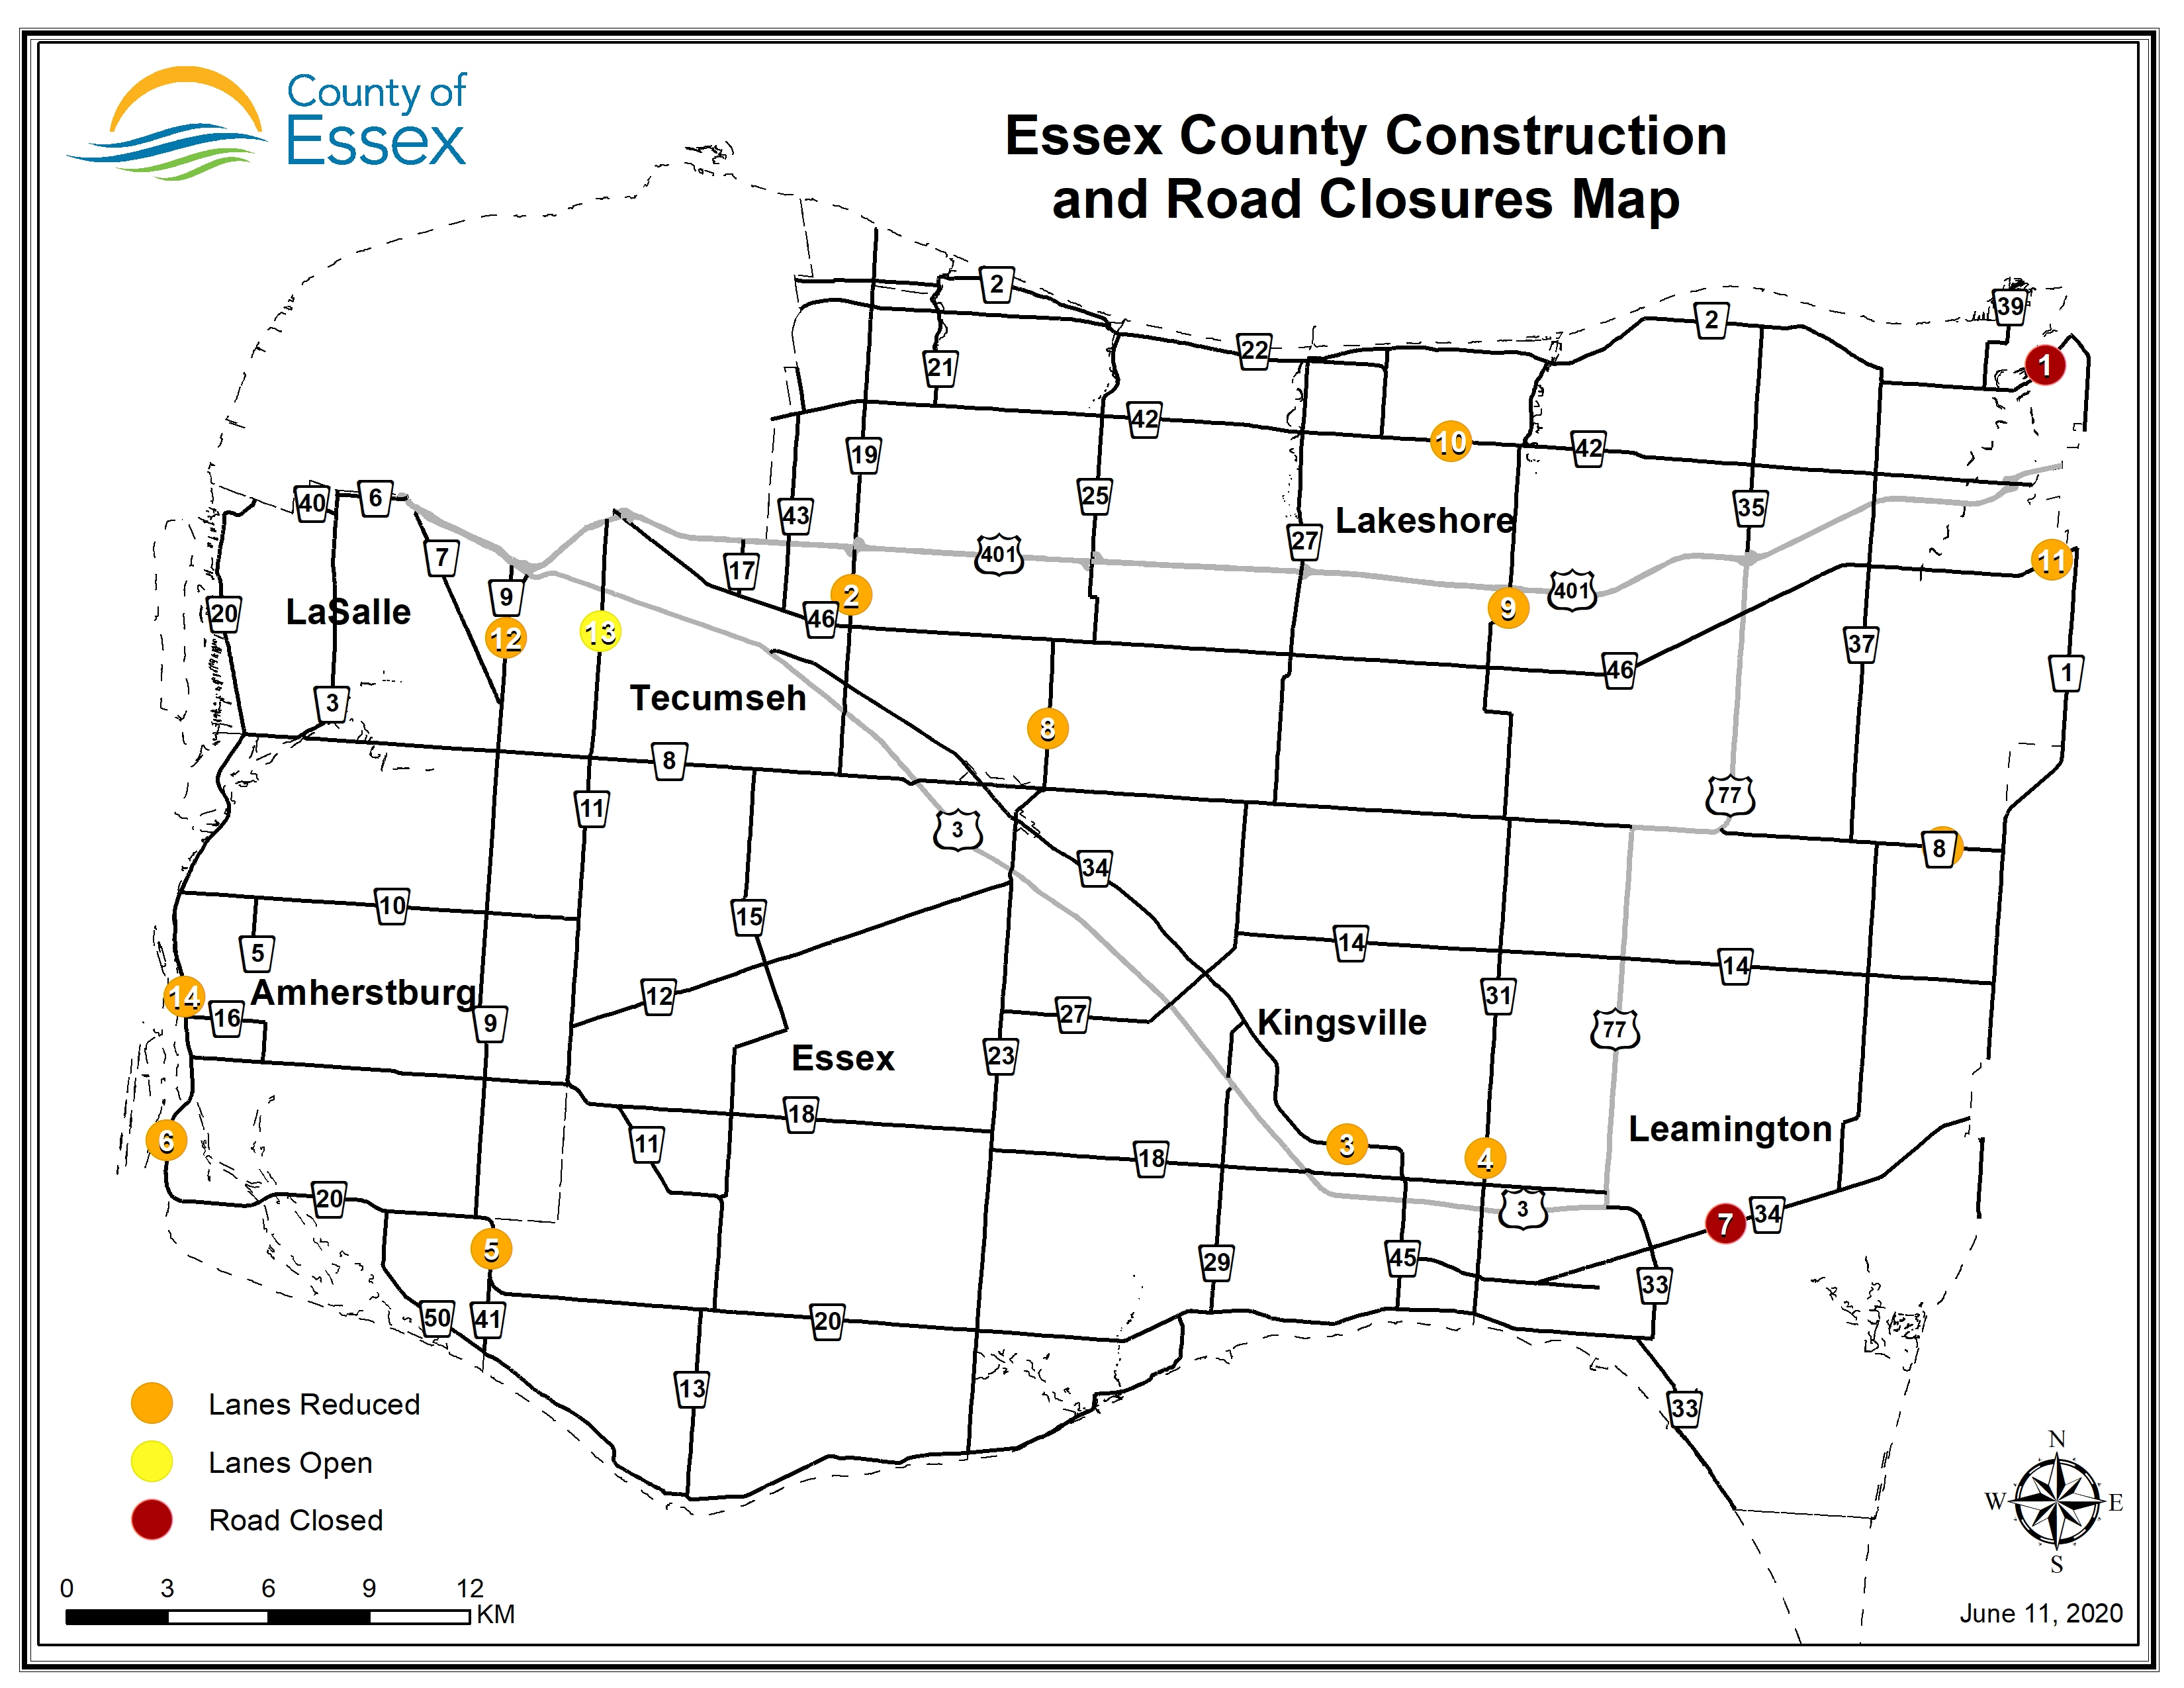 A map of Essex County showing road closures and lane restrictions for June 12, 2020